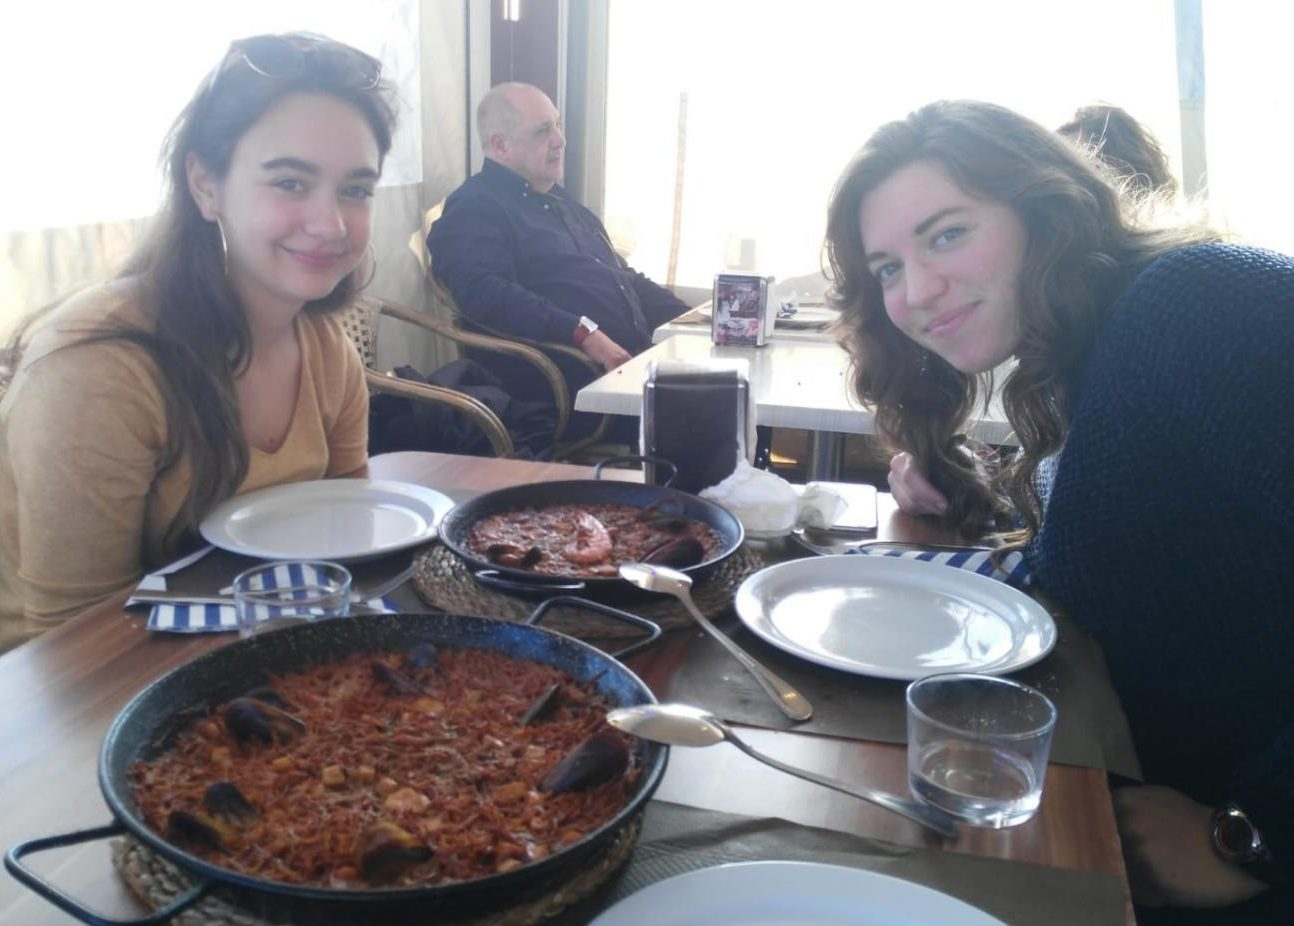 Waiting to eat a traditional Spanish meal, senior Olivia Neuzil and Laia López Rigol pose for a picture.